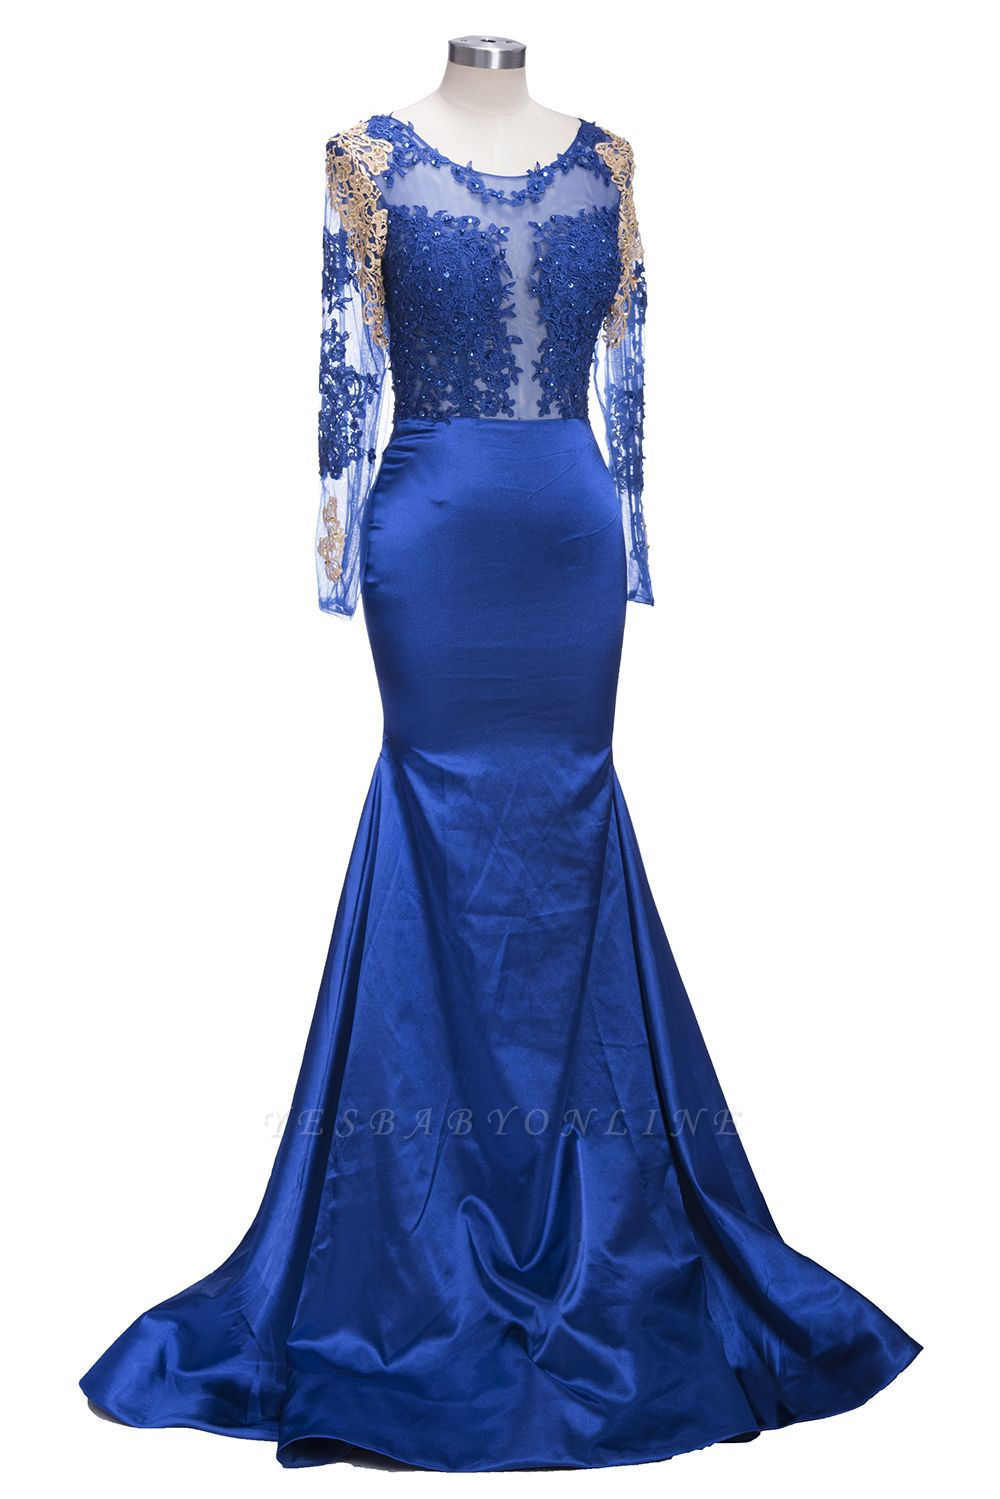 Gold-Appliques Navy-Blue Mermaid Long-Sleeves Sheer Prom Dresses